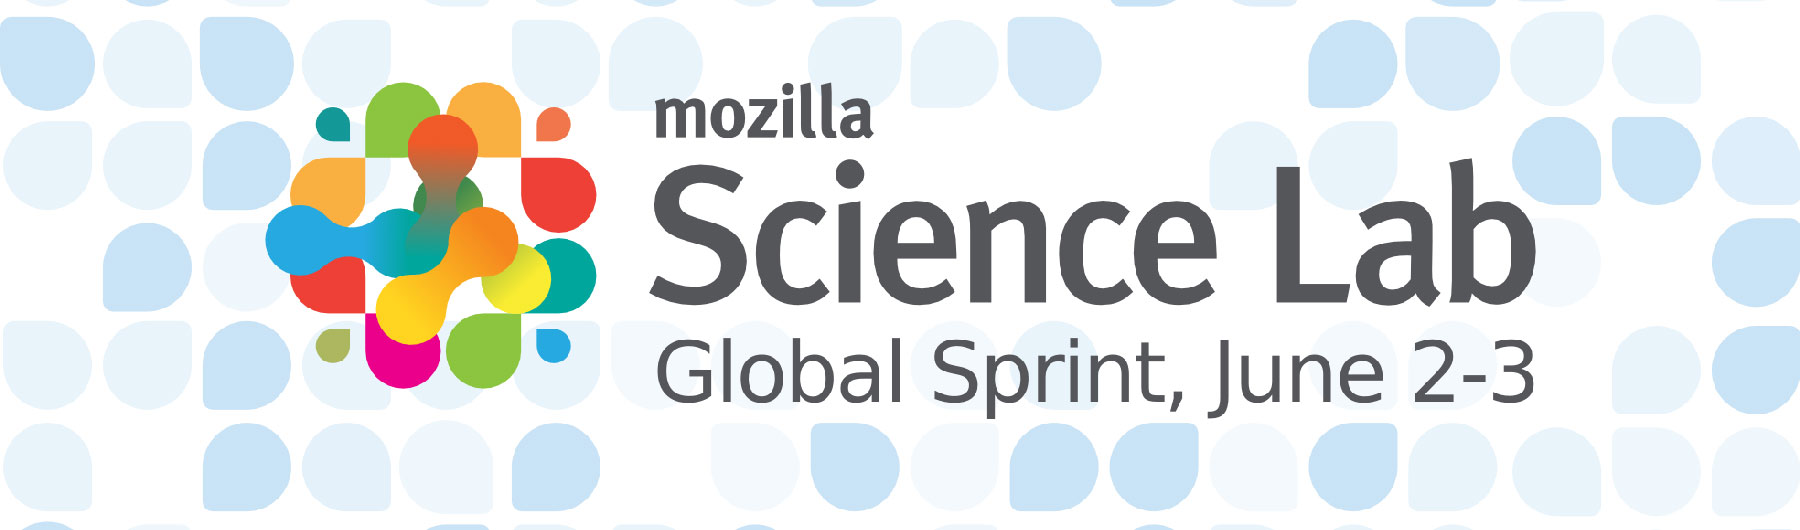 Mozilla Science Global Sprint 2016, Potchefstroom